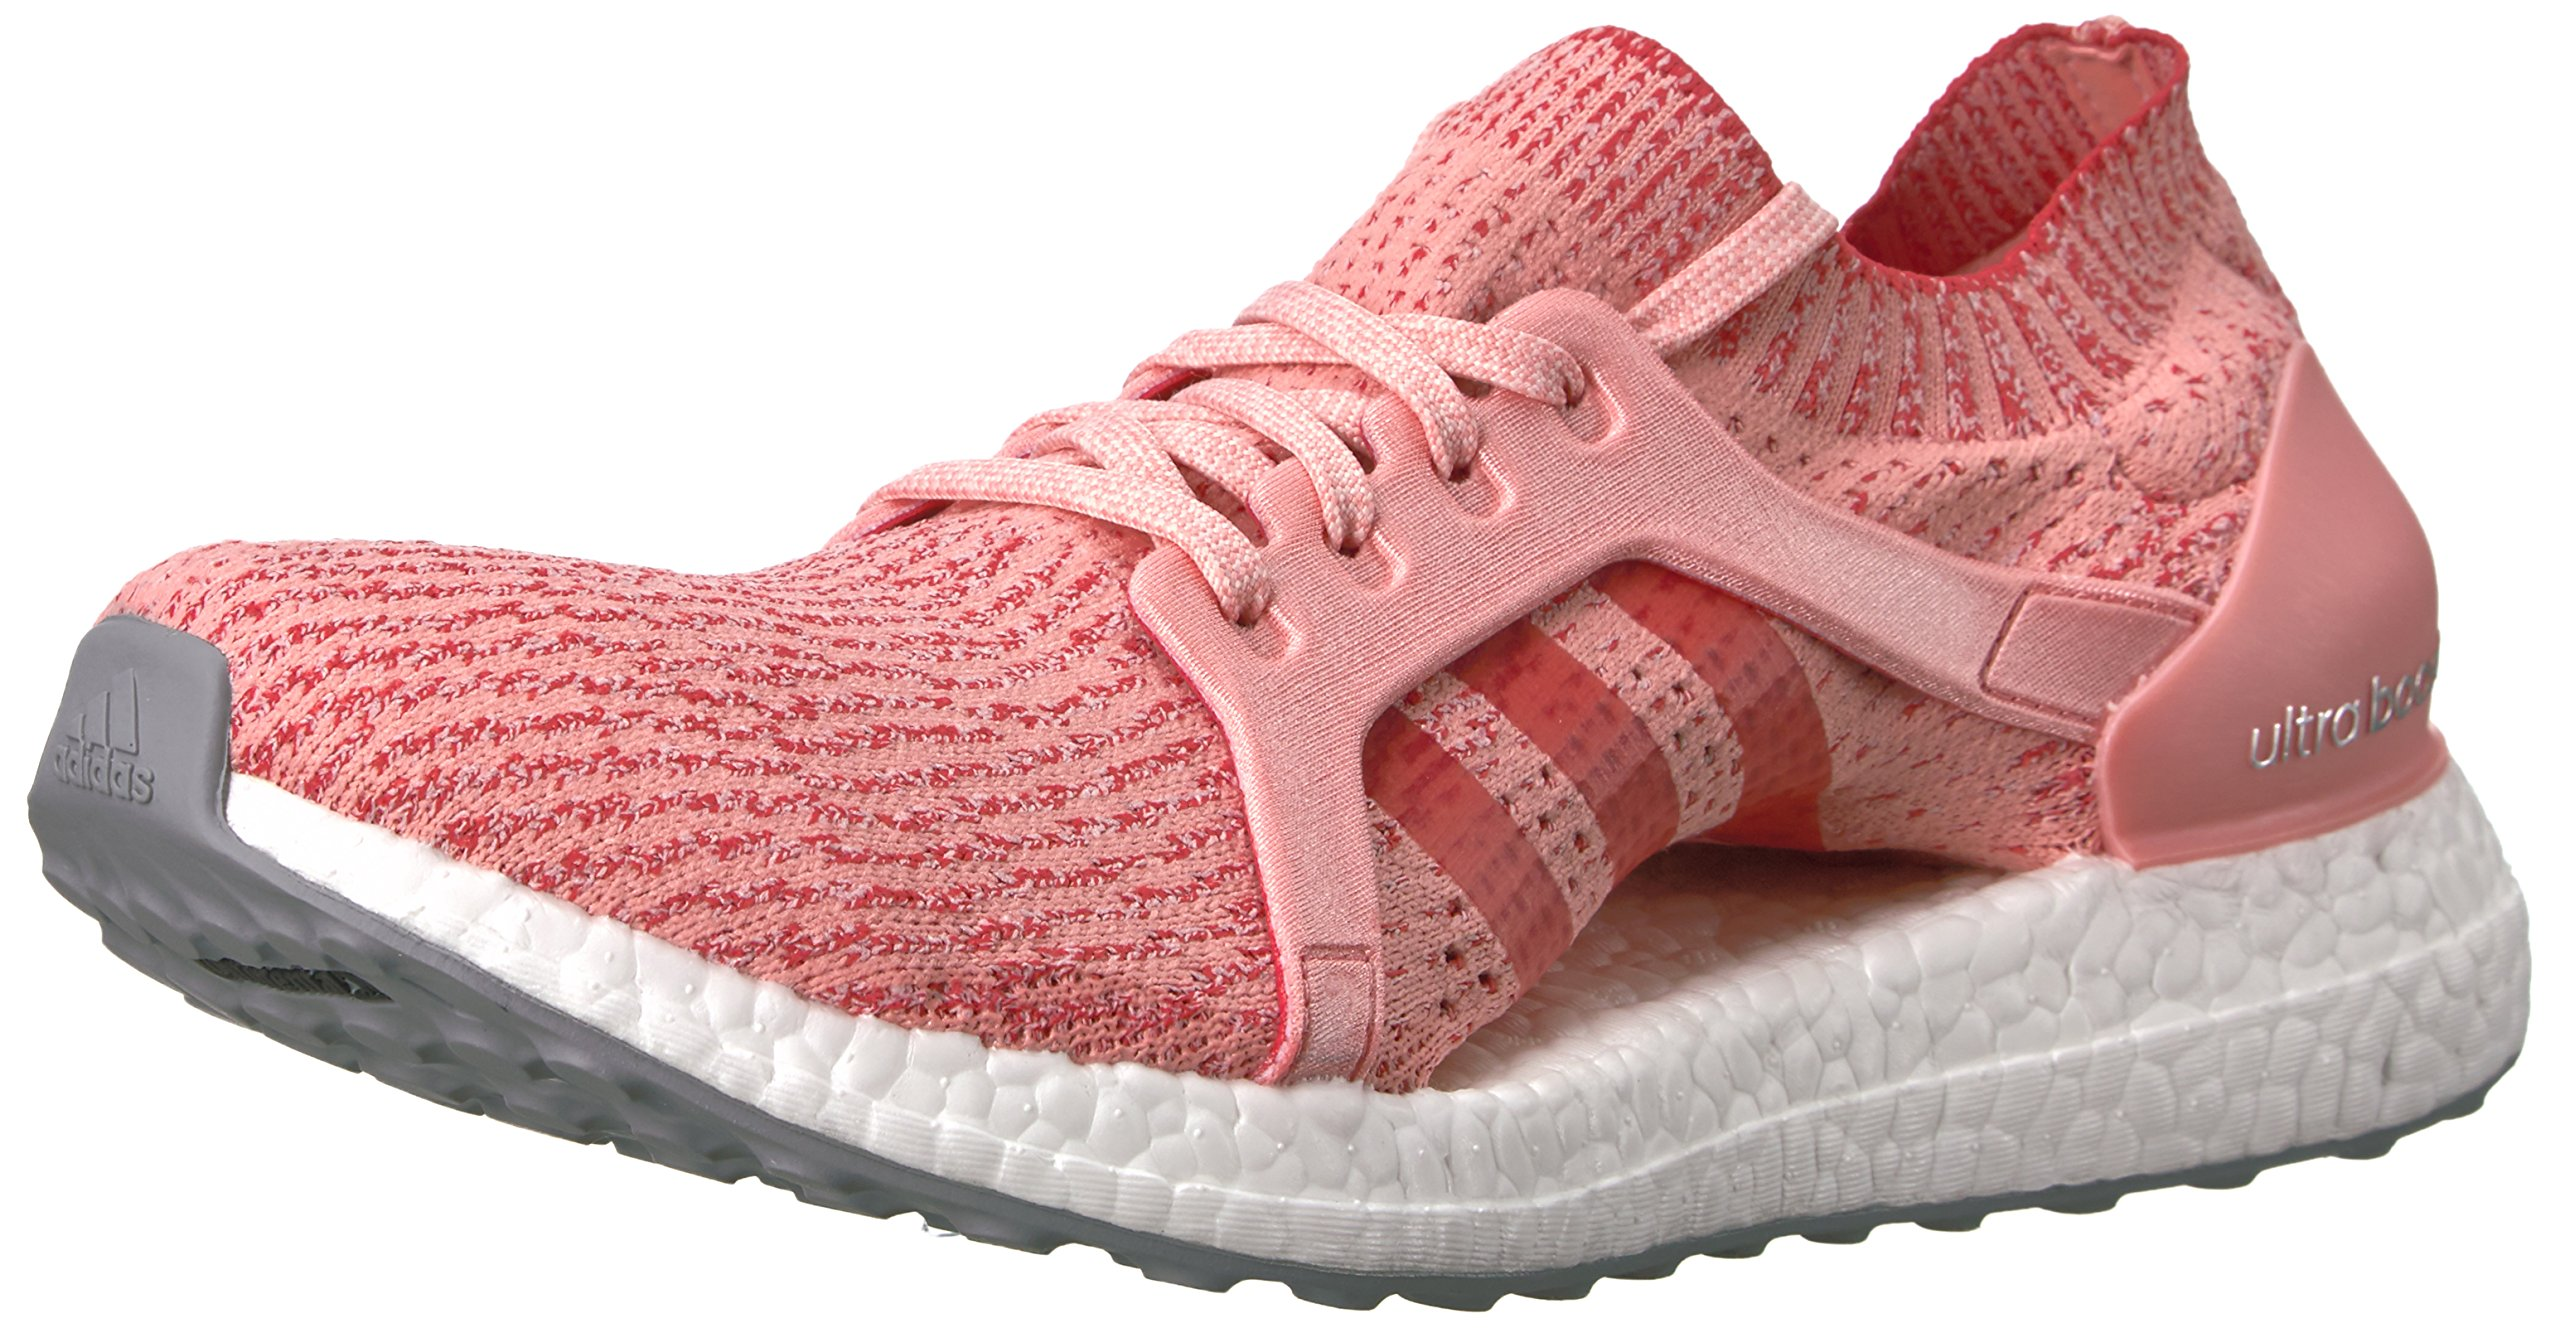 1103644fc0b2a Galleon - Adidas Women s Ultraboost X Running Shoe Trace Pink Tactile RED 8  Medium US